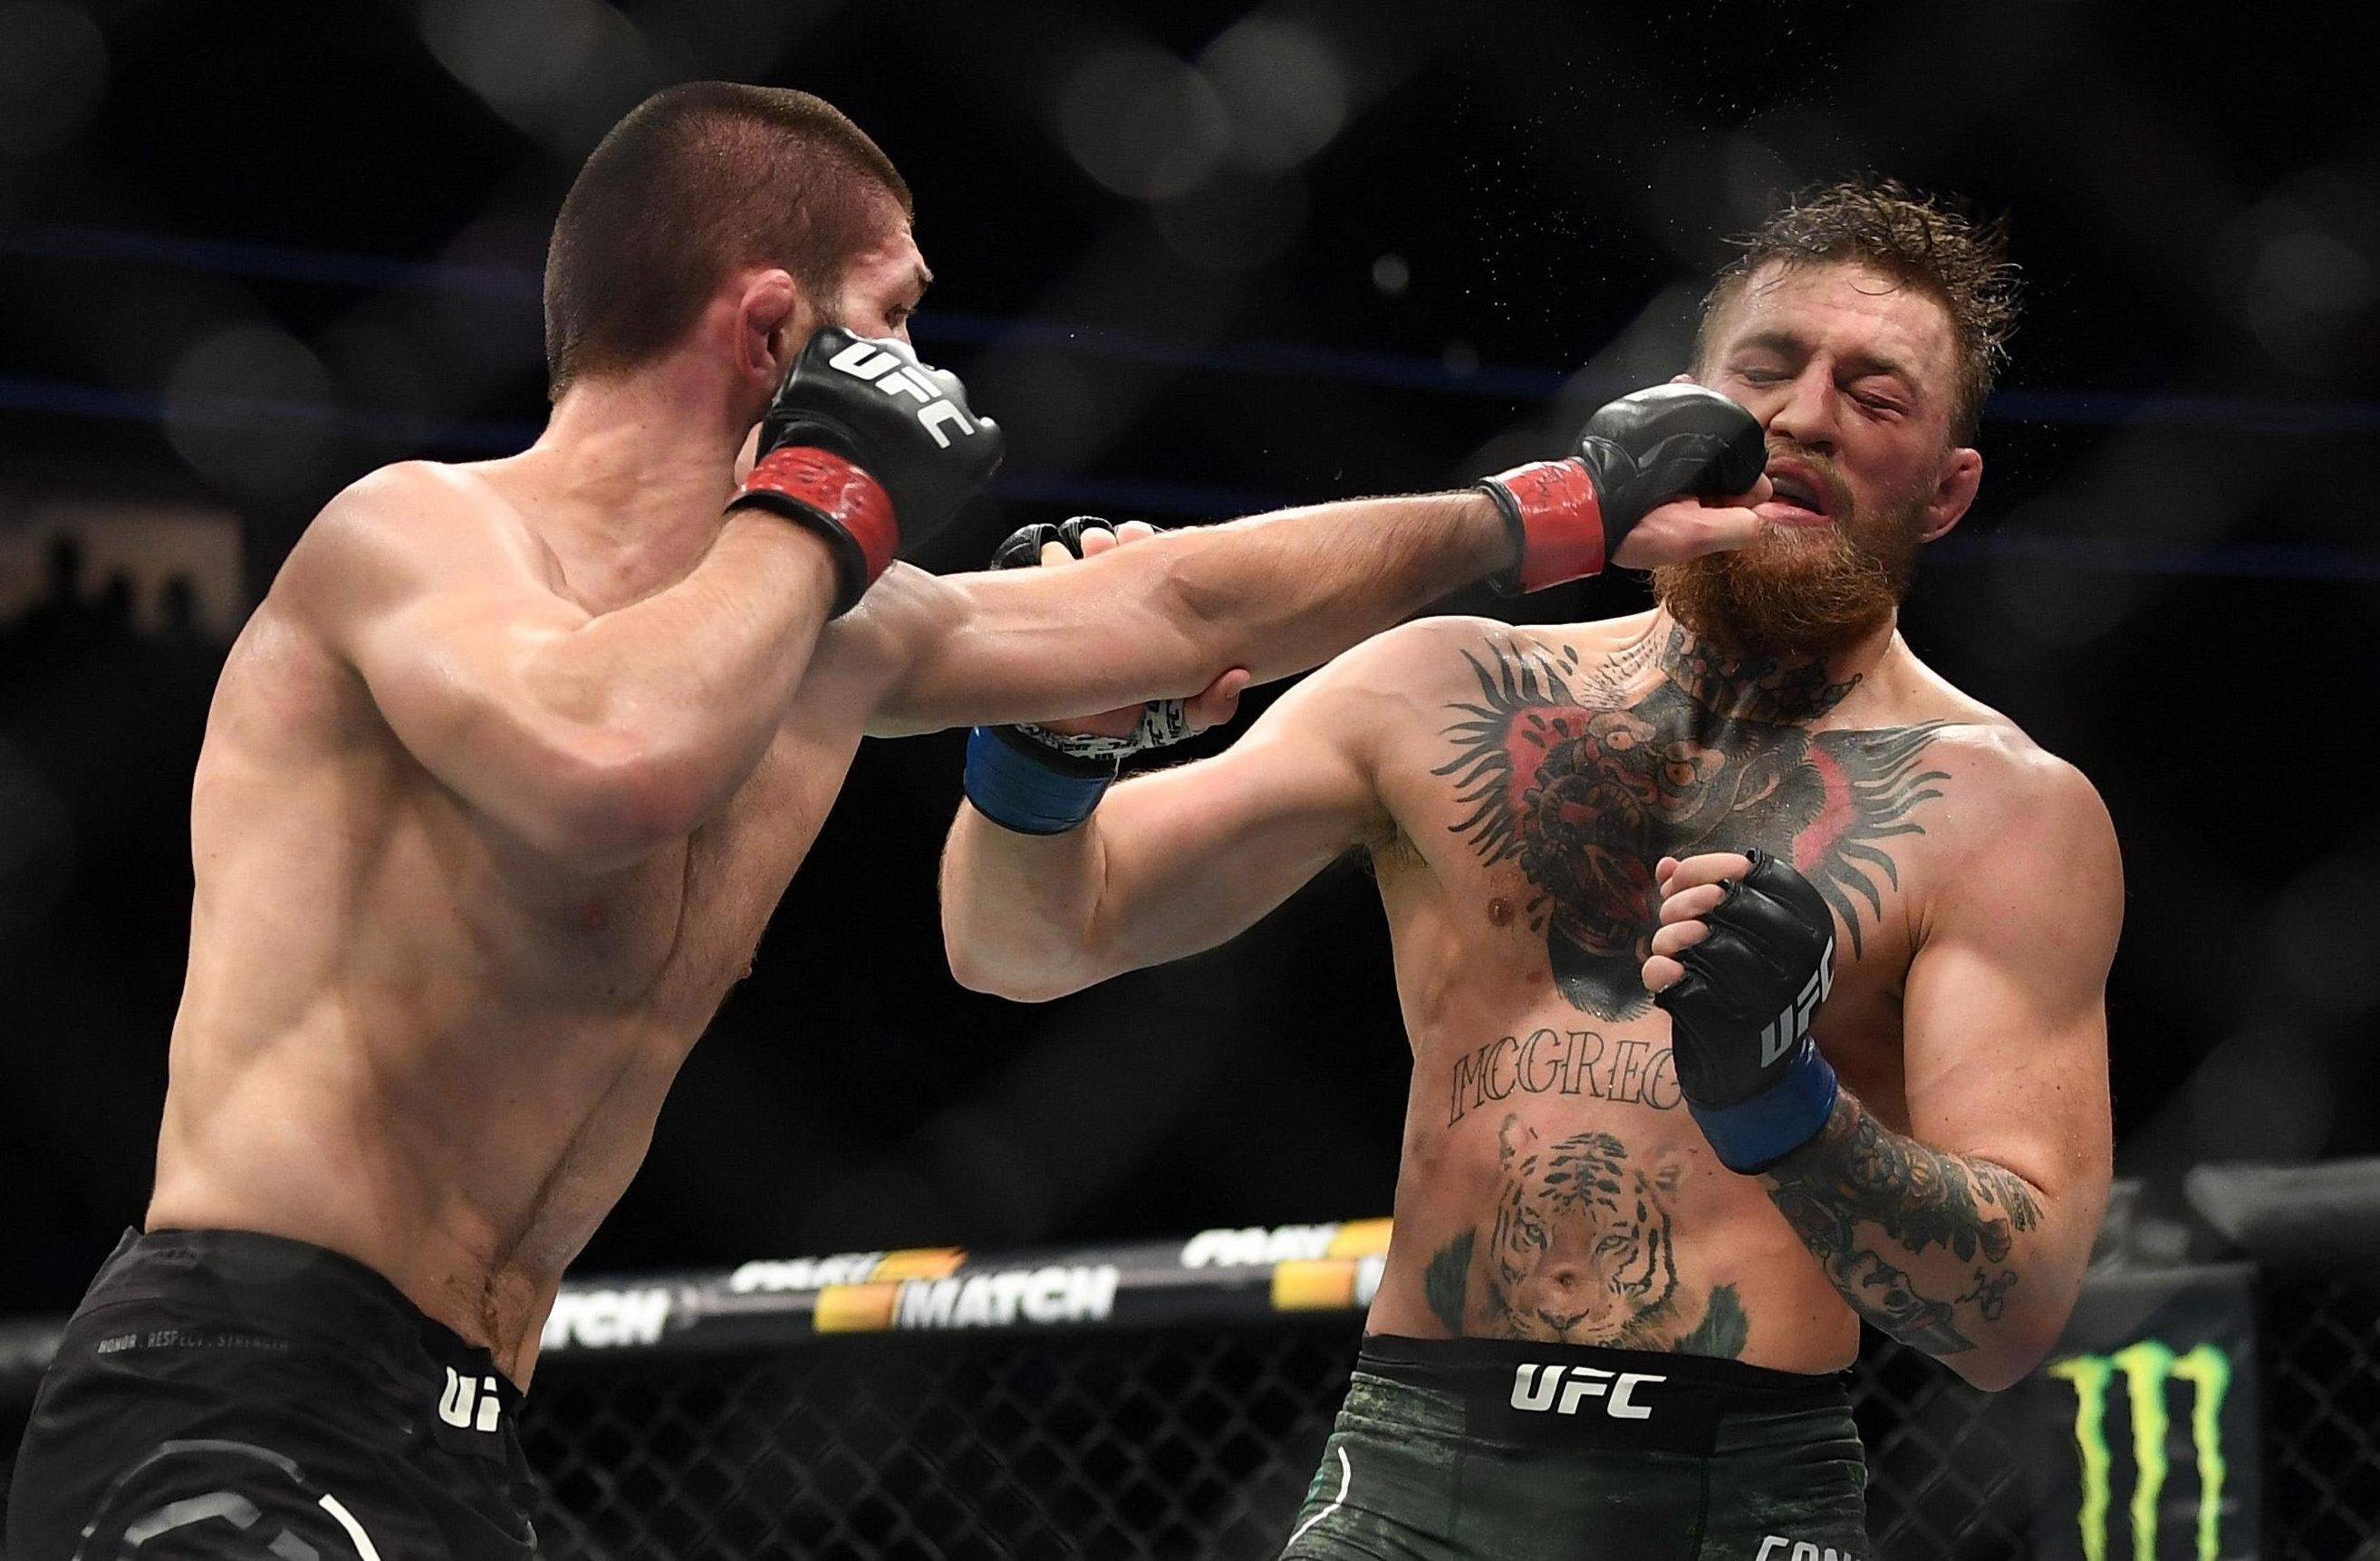 Conor McGregor vs Khabib Nurmagomedov Rematch